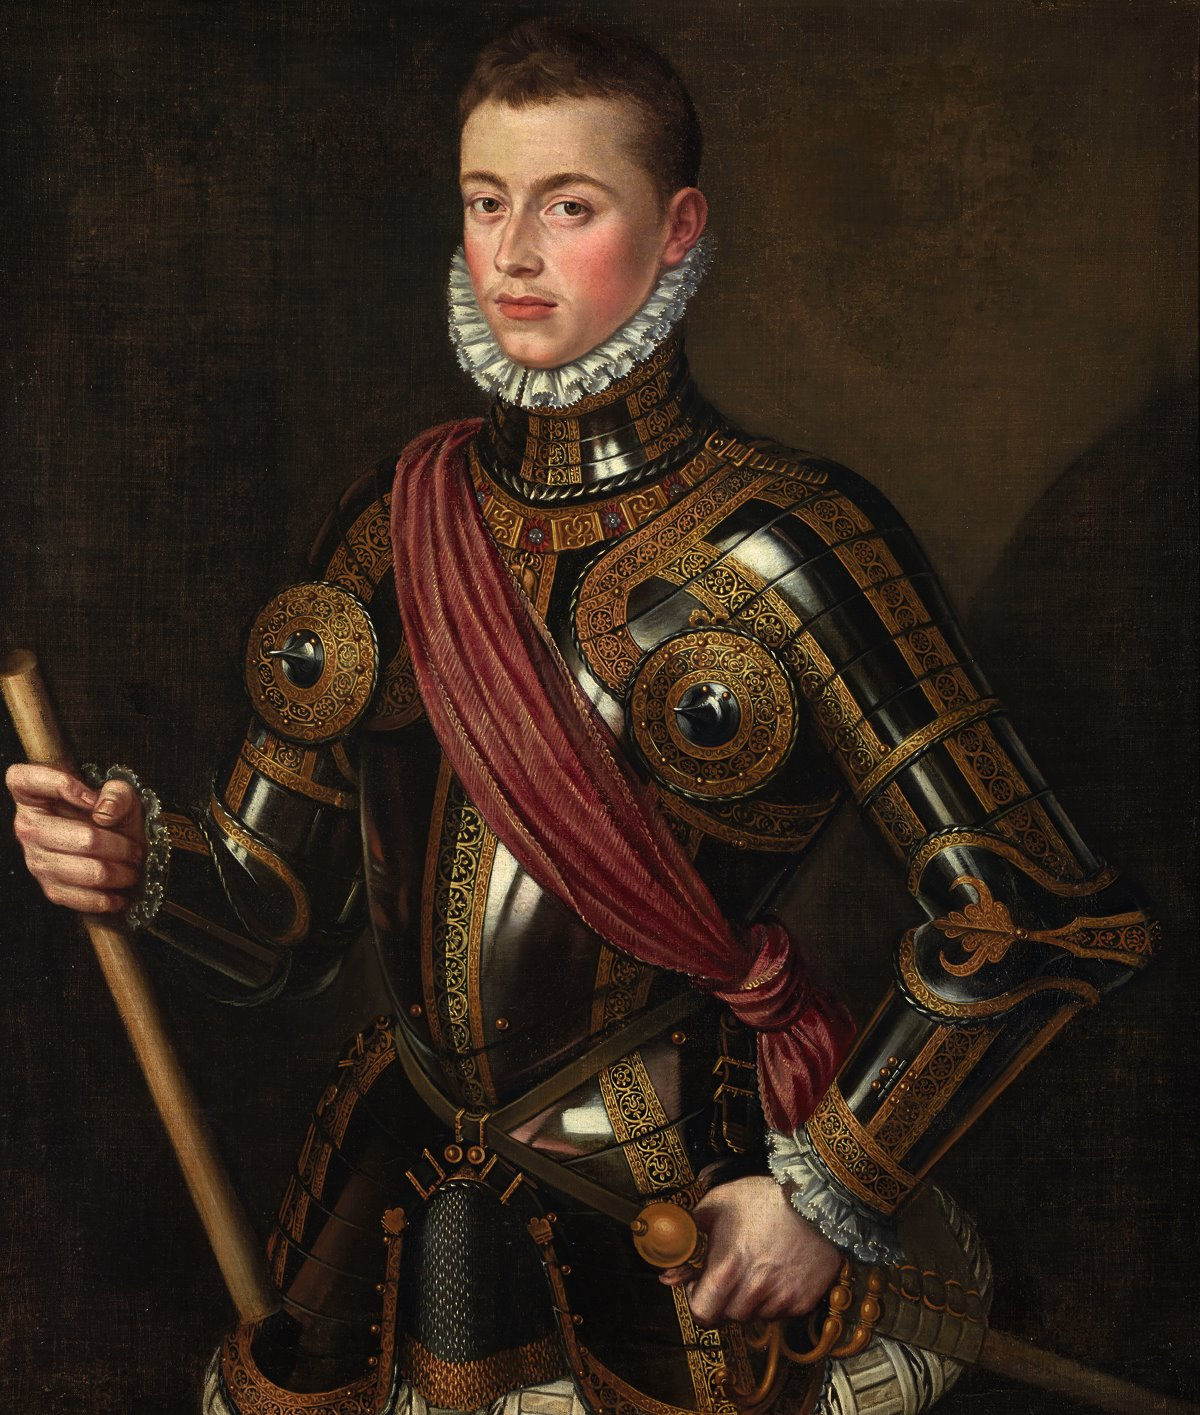 File:John of Austria portrait.jpg